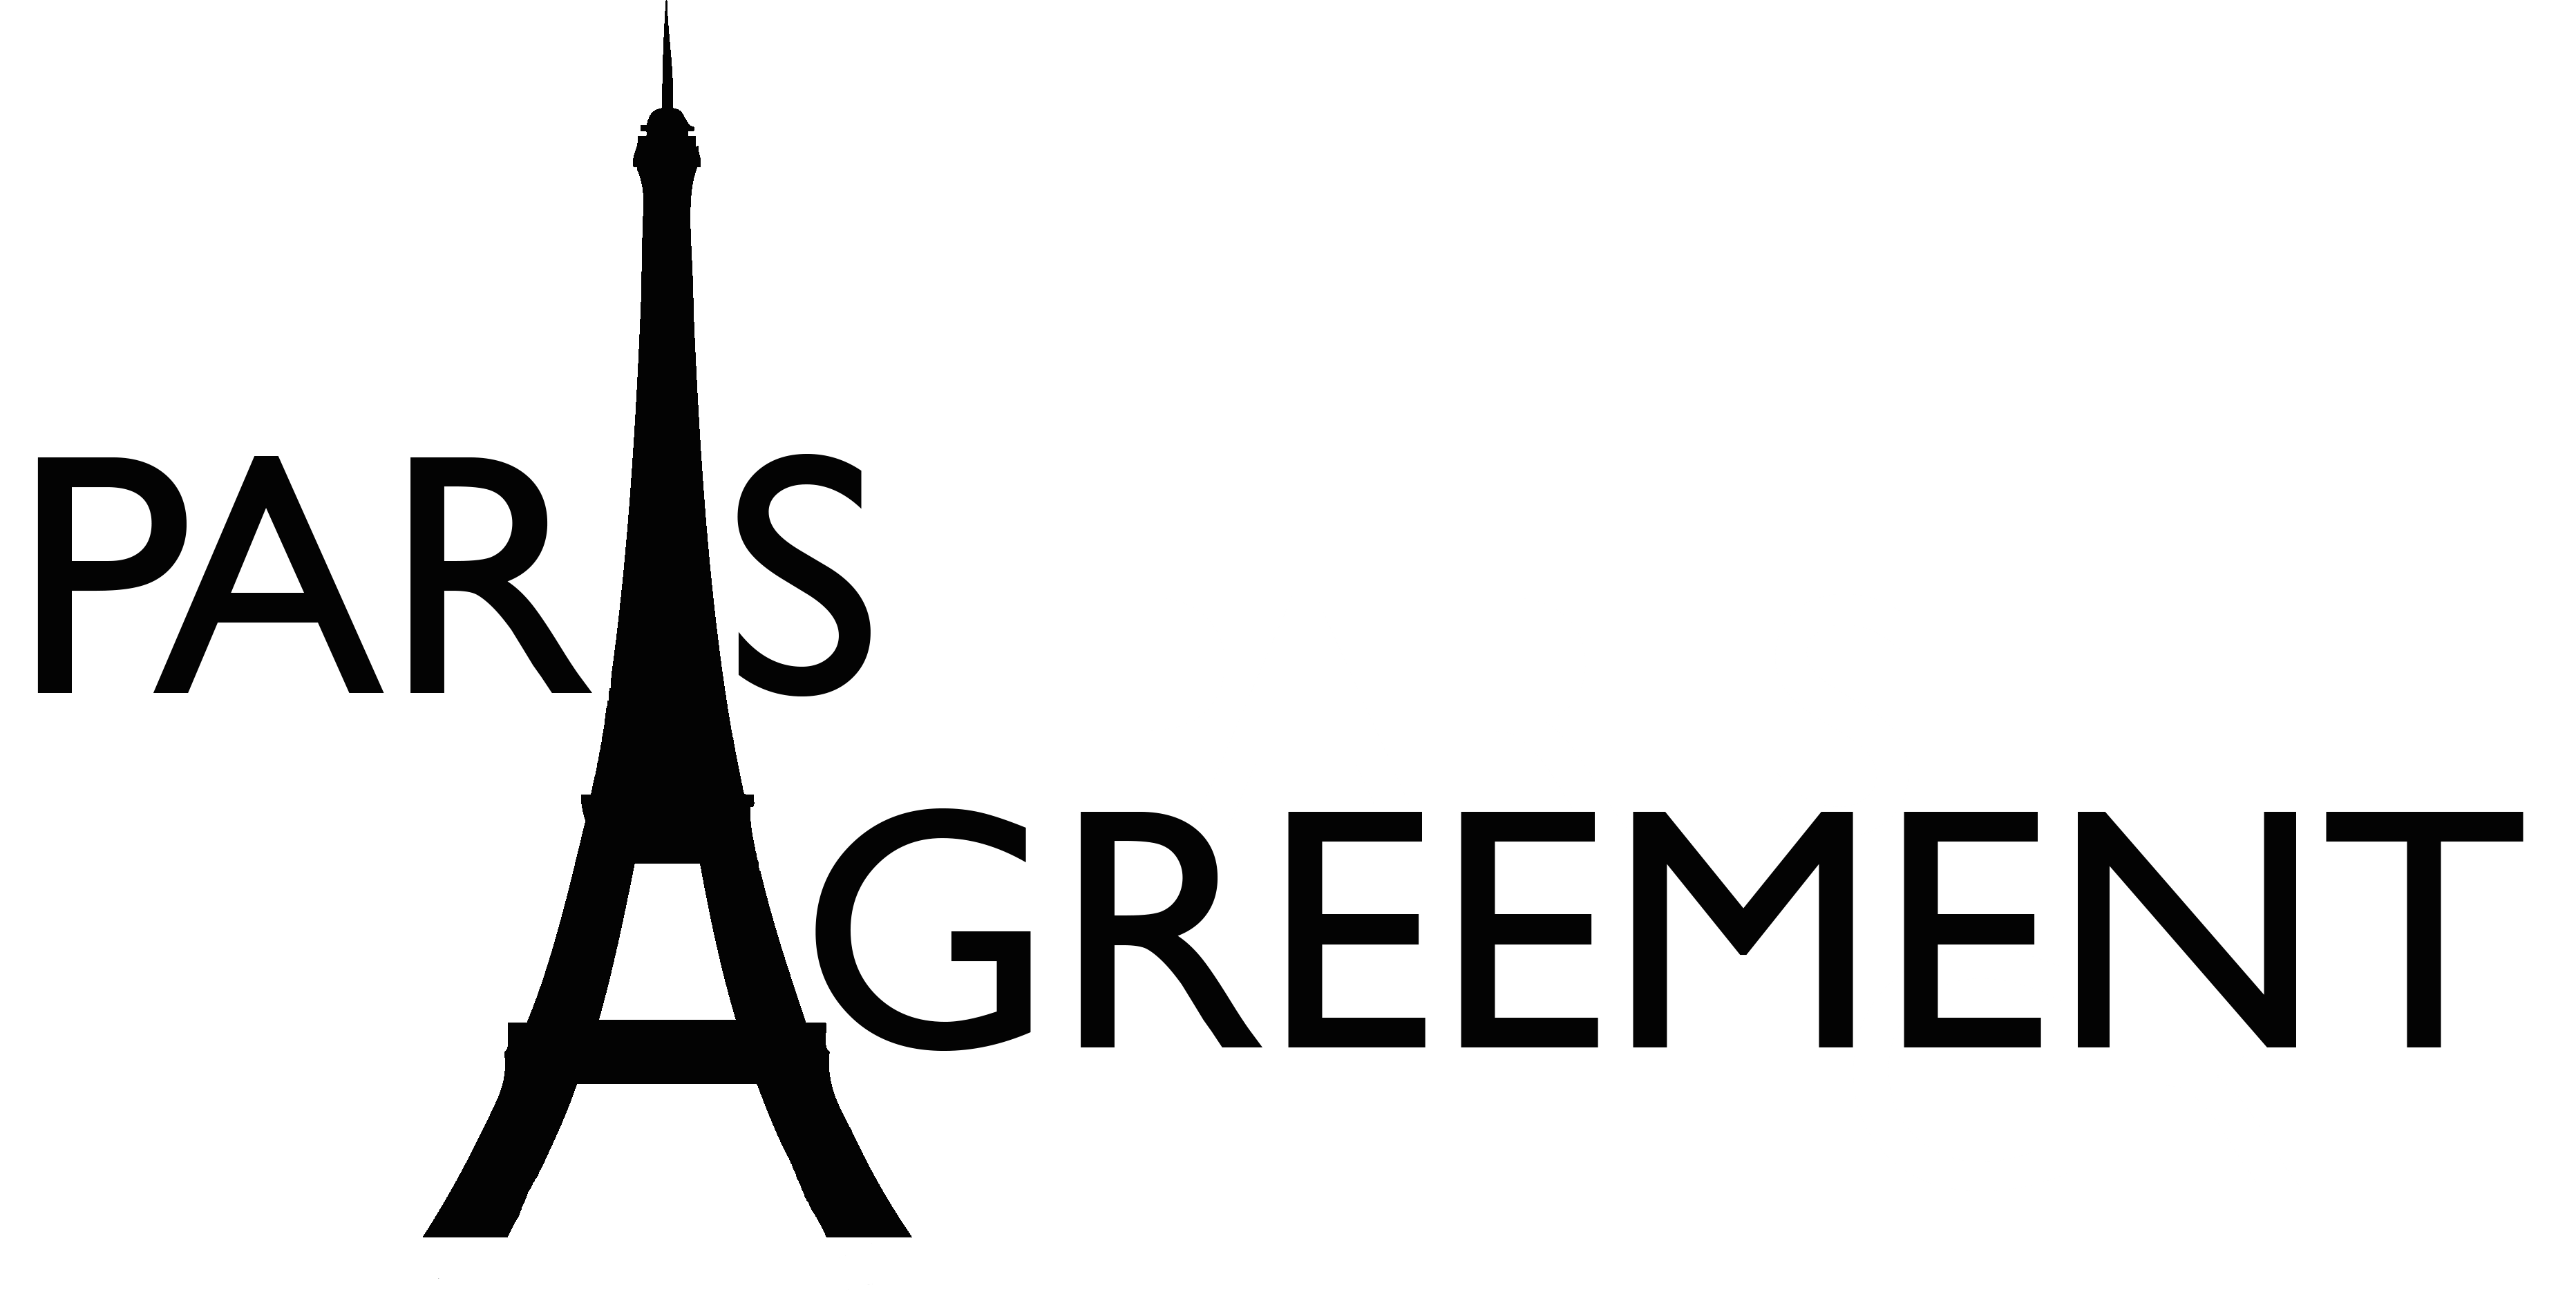 Shippers Make Case for U.S. to Remain in the Paris Agreement